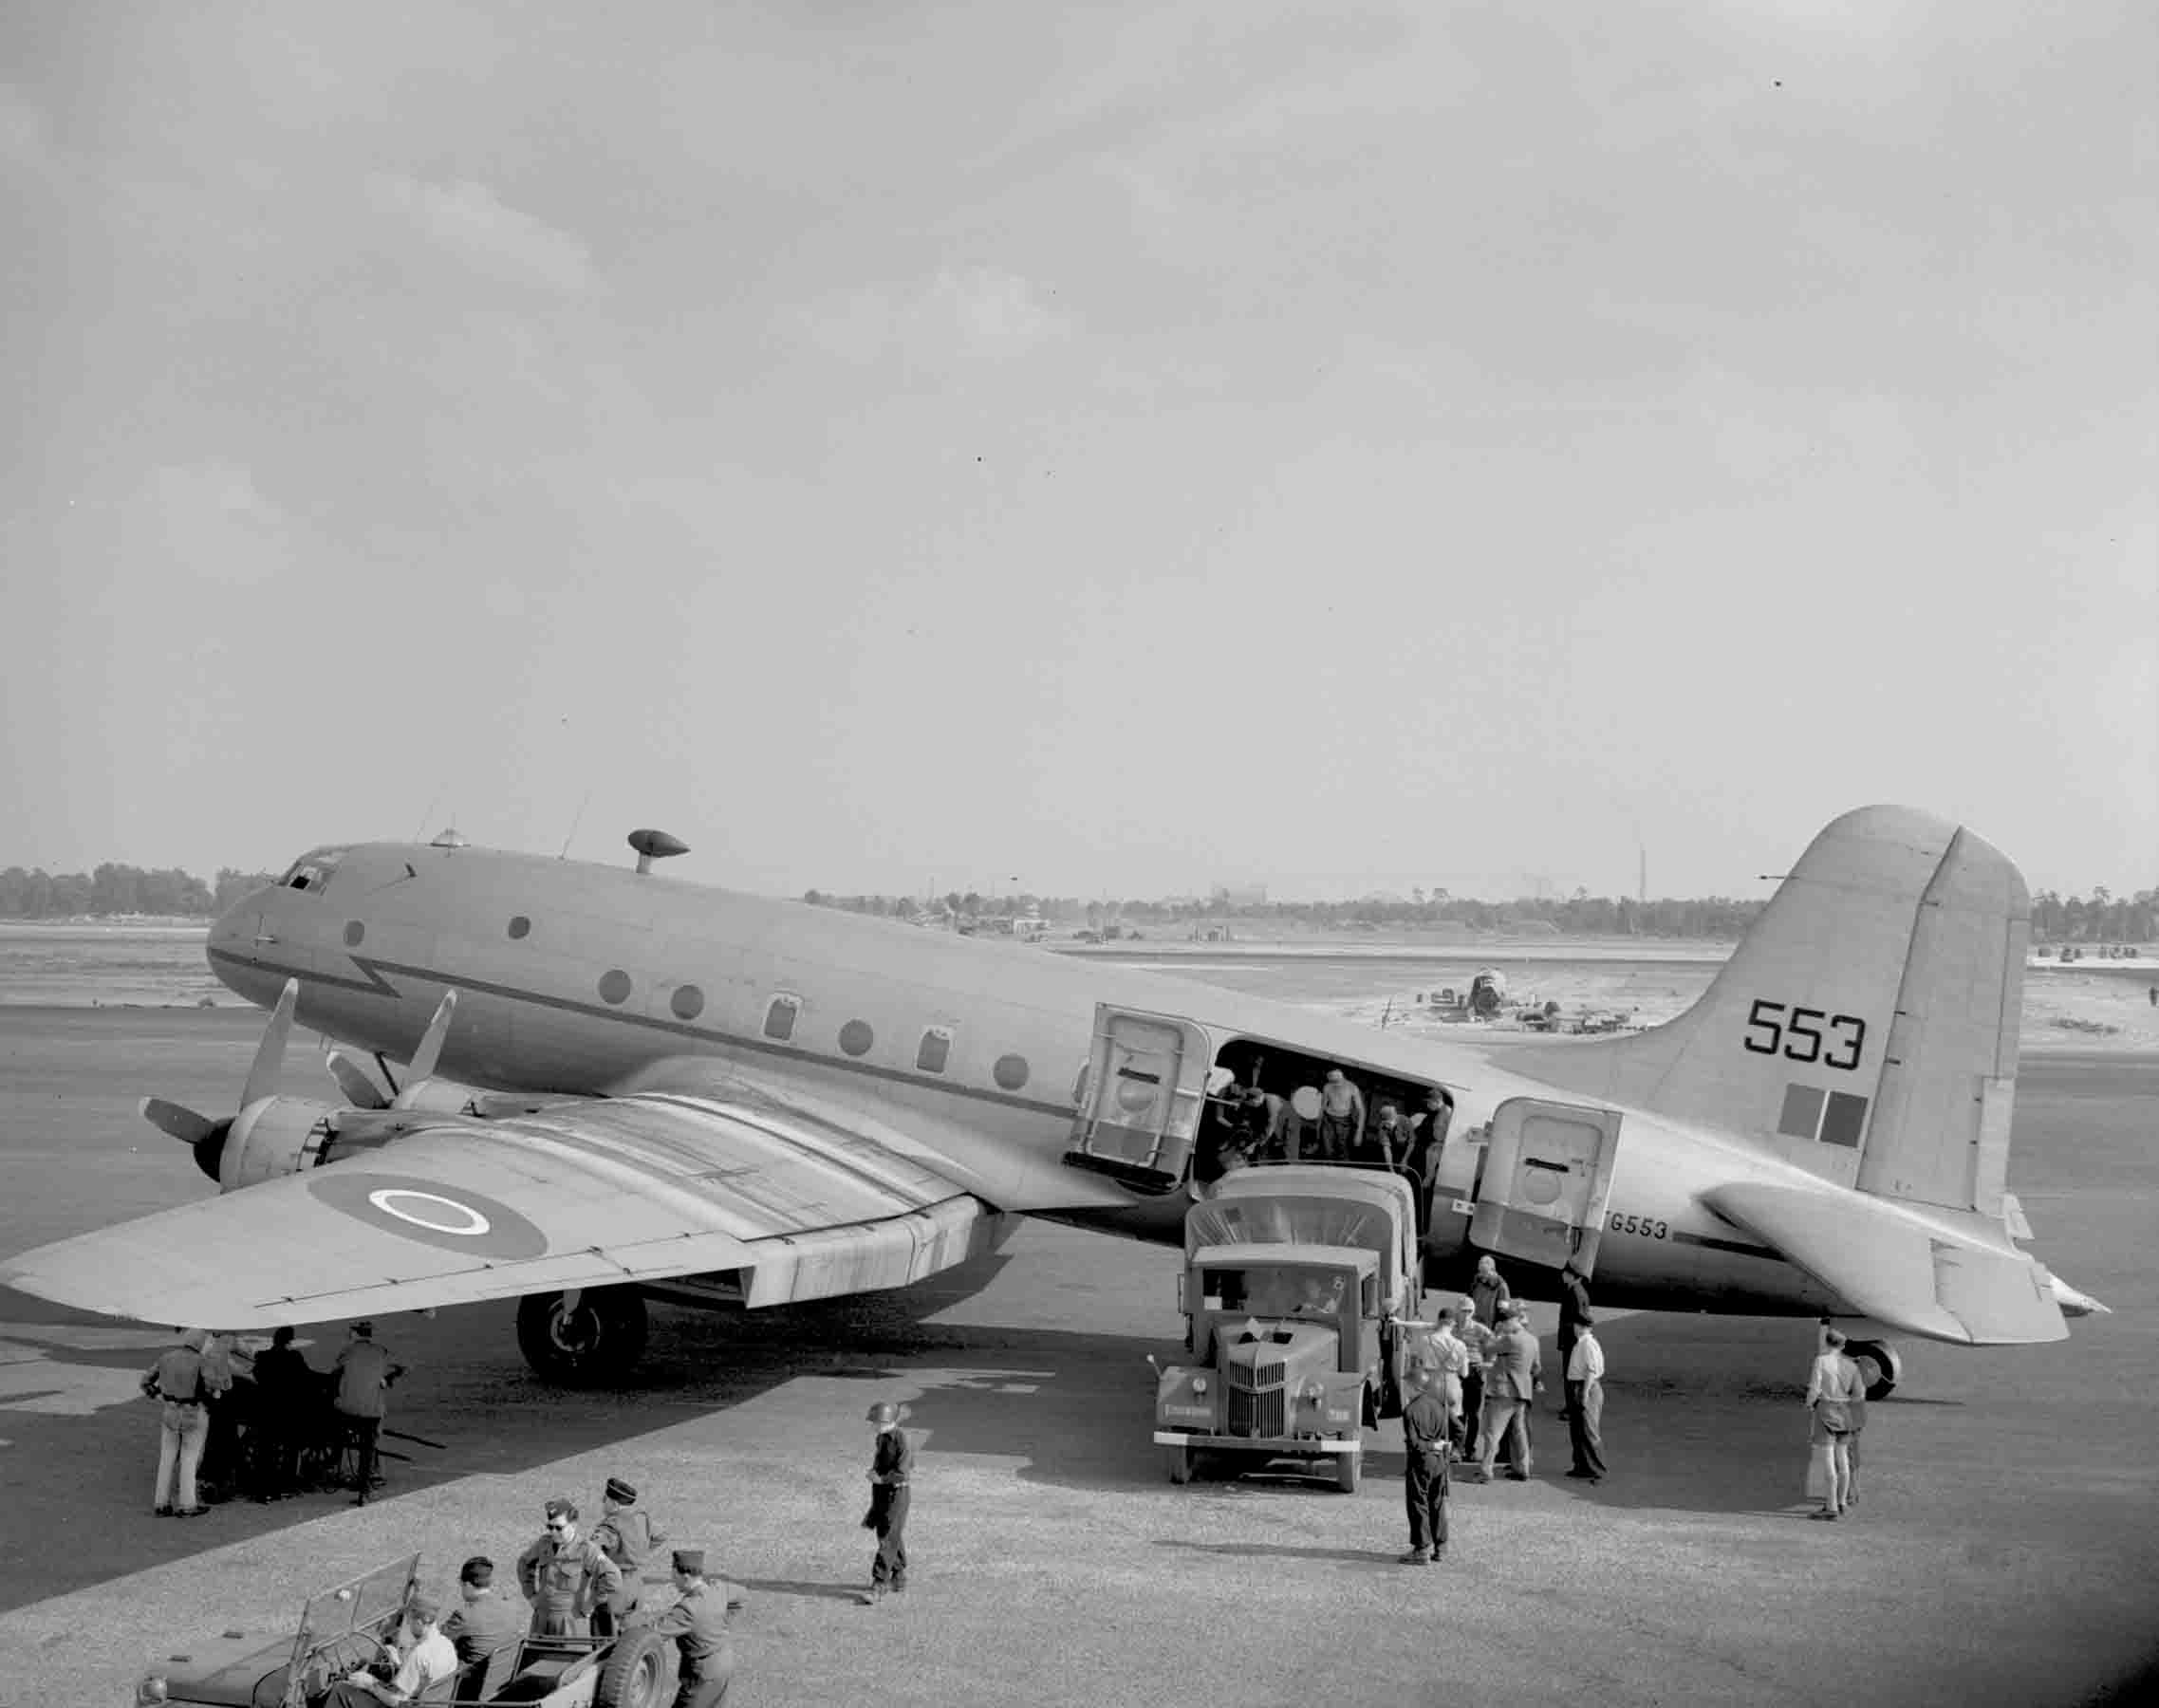 One of the aircraft being filled with supplies